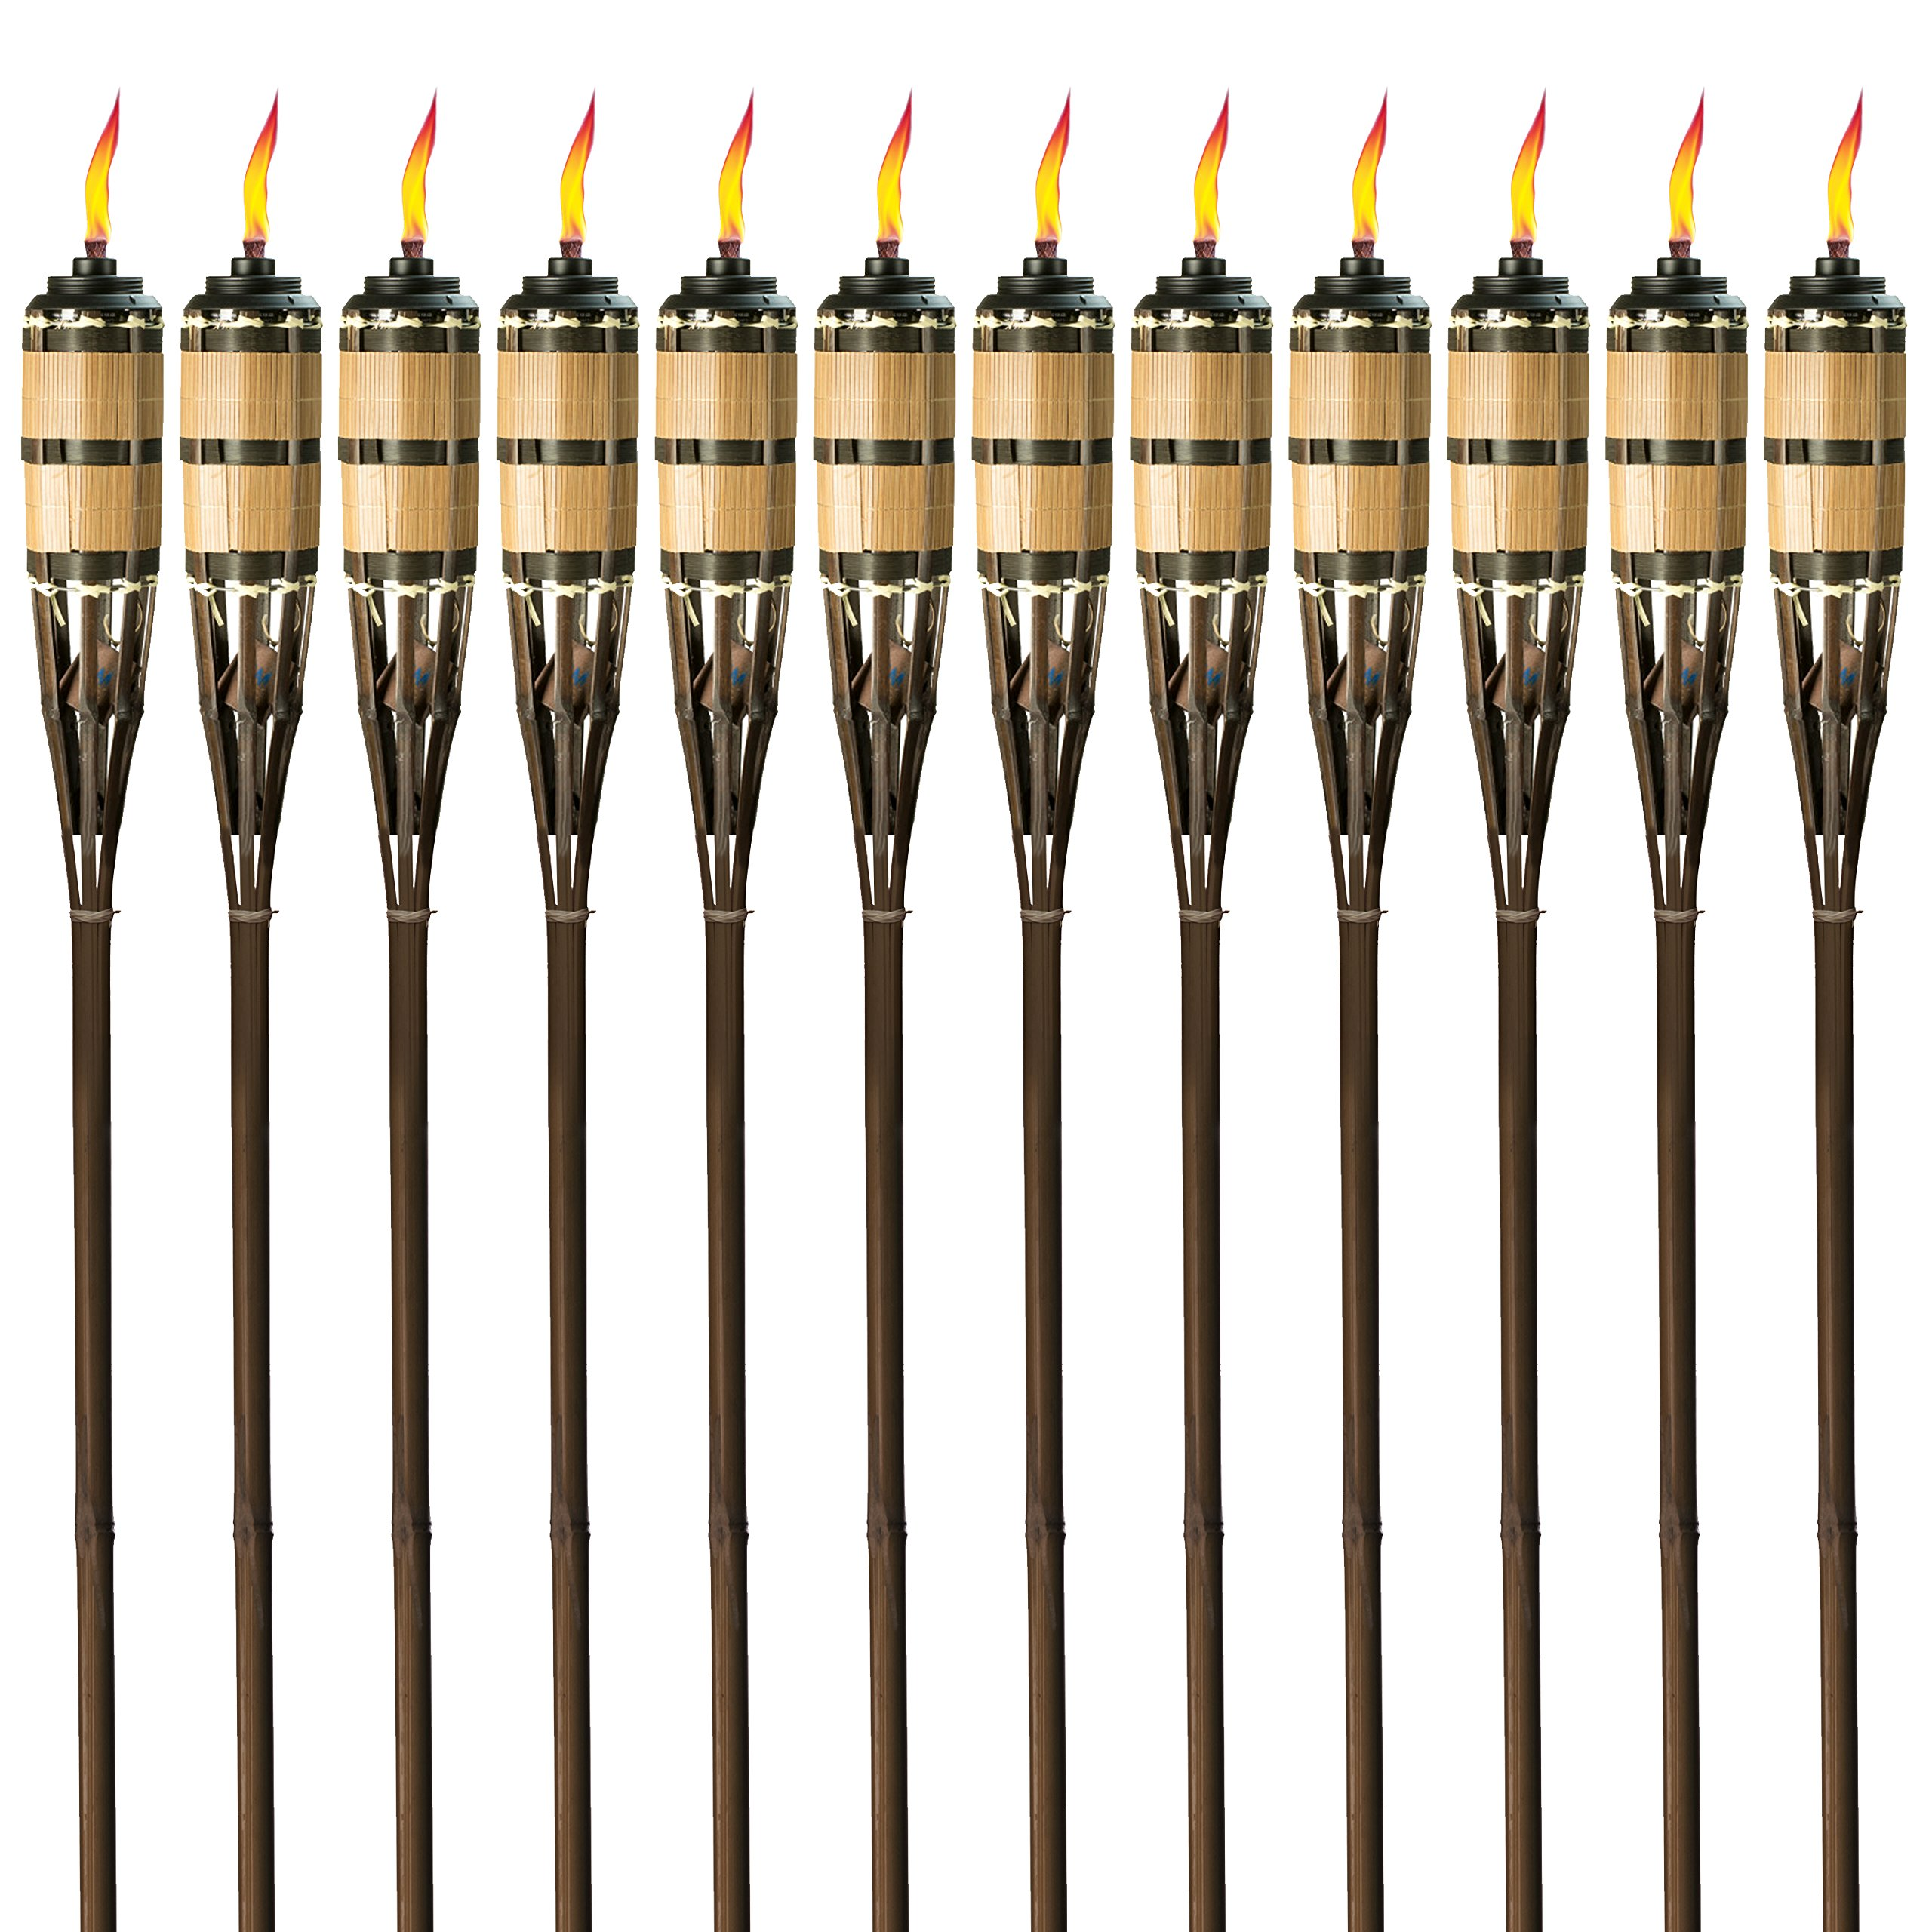 Tiki Brand 1117071 Cypress Brown 12-Pack Torch, 60-Inch, Bamboo